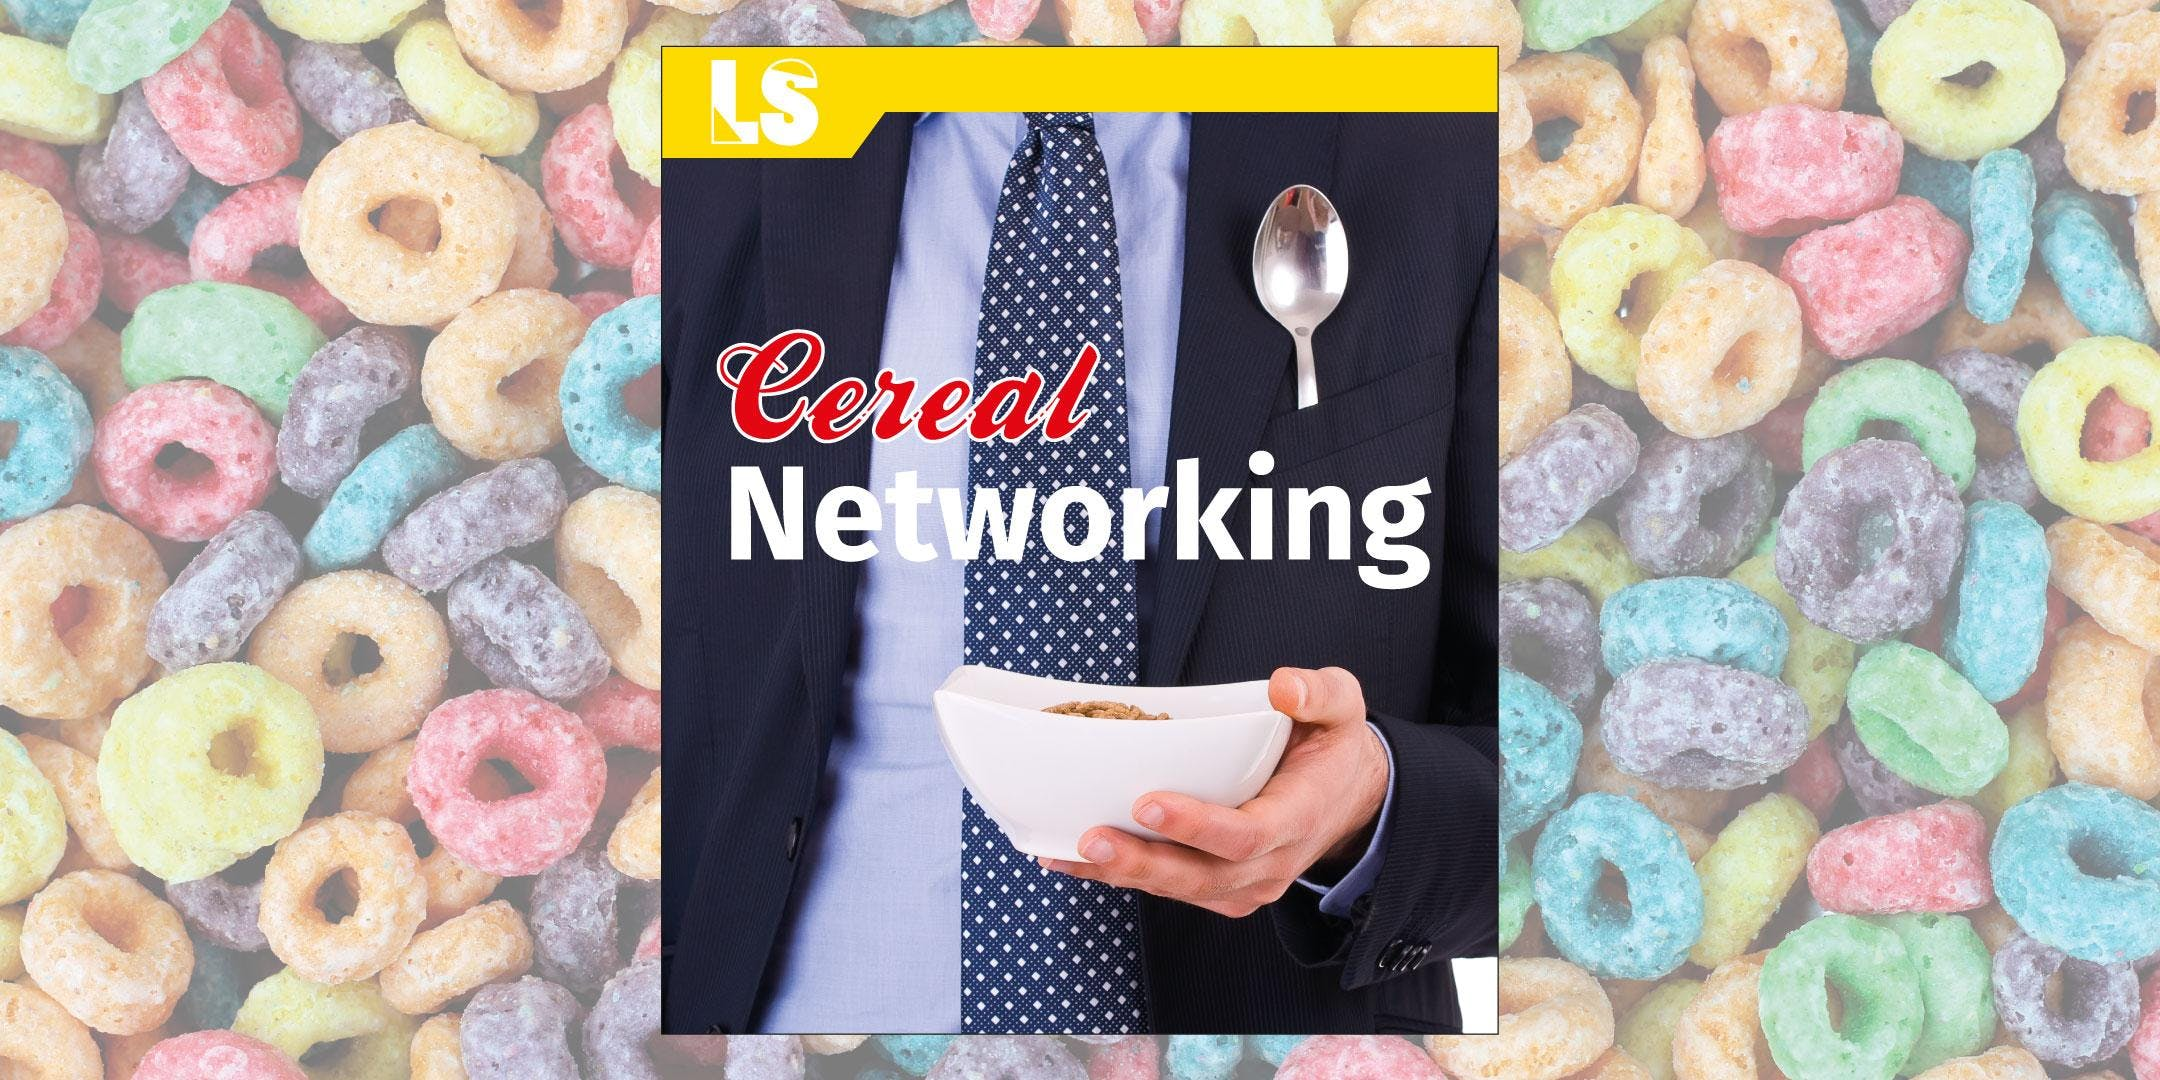 Cereal Networking - Tuesday 5th June 2018